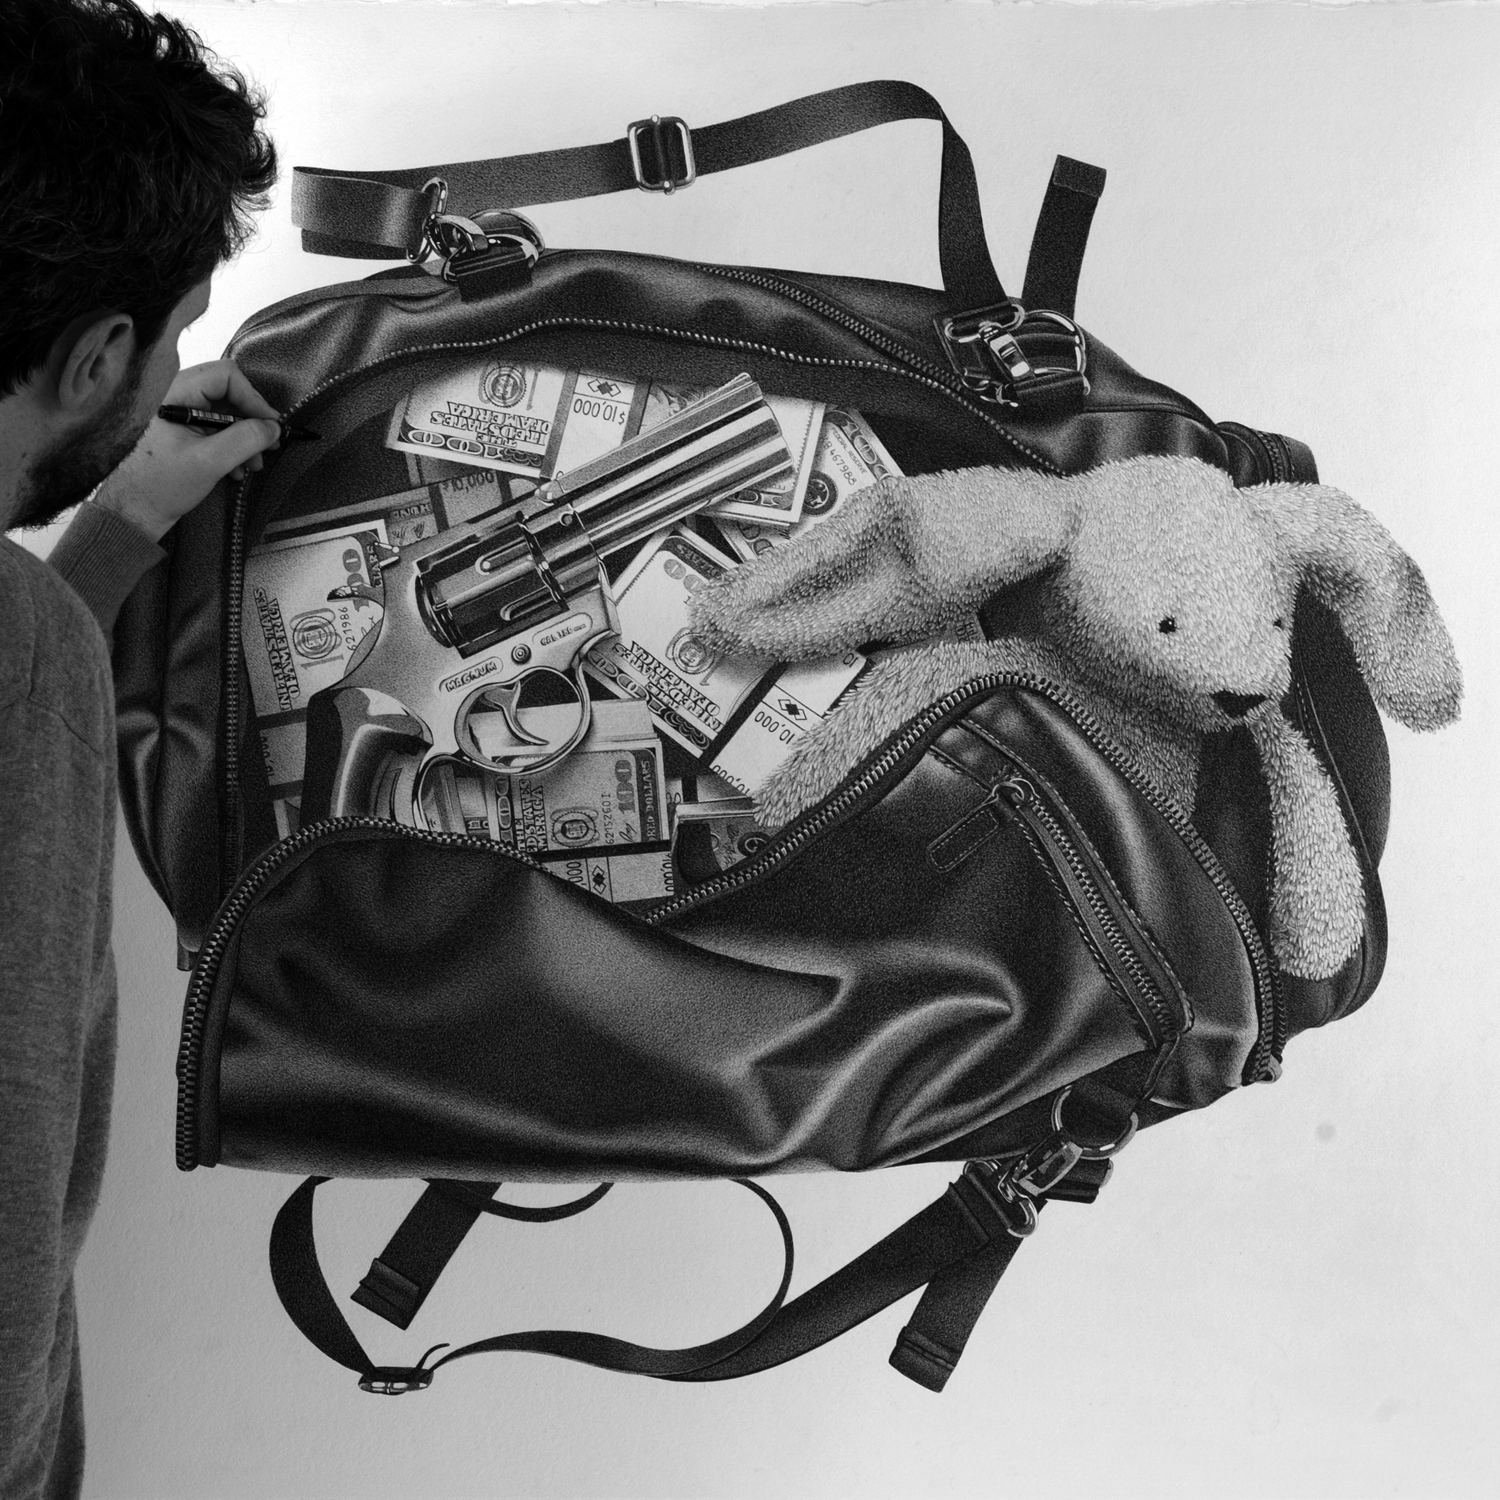 02-Money-Bag-Alessandro-Paglia-Photo-Like-Black-and-White-Drawings-www-designstack-co